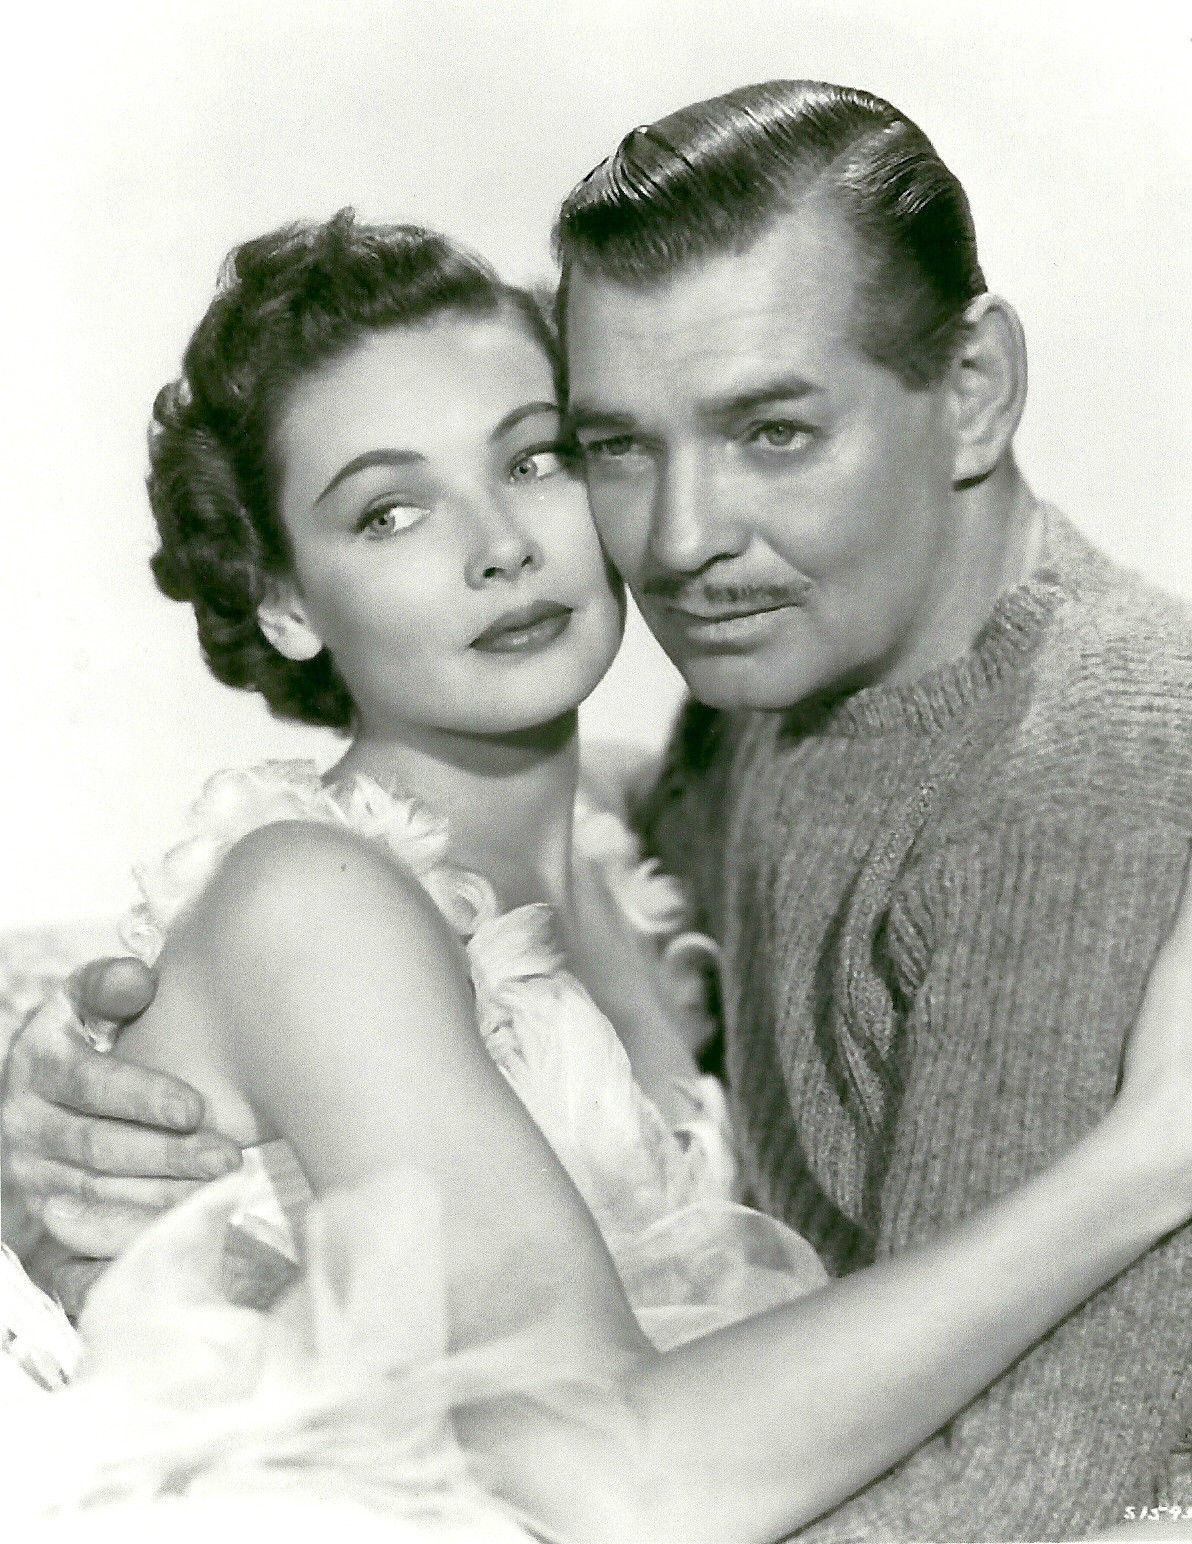 Clark Gable and Gene Tierney in Never Let Me Go (1953)